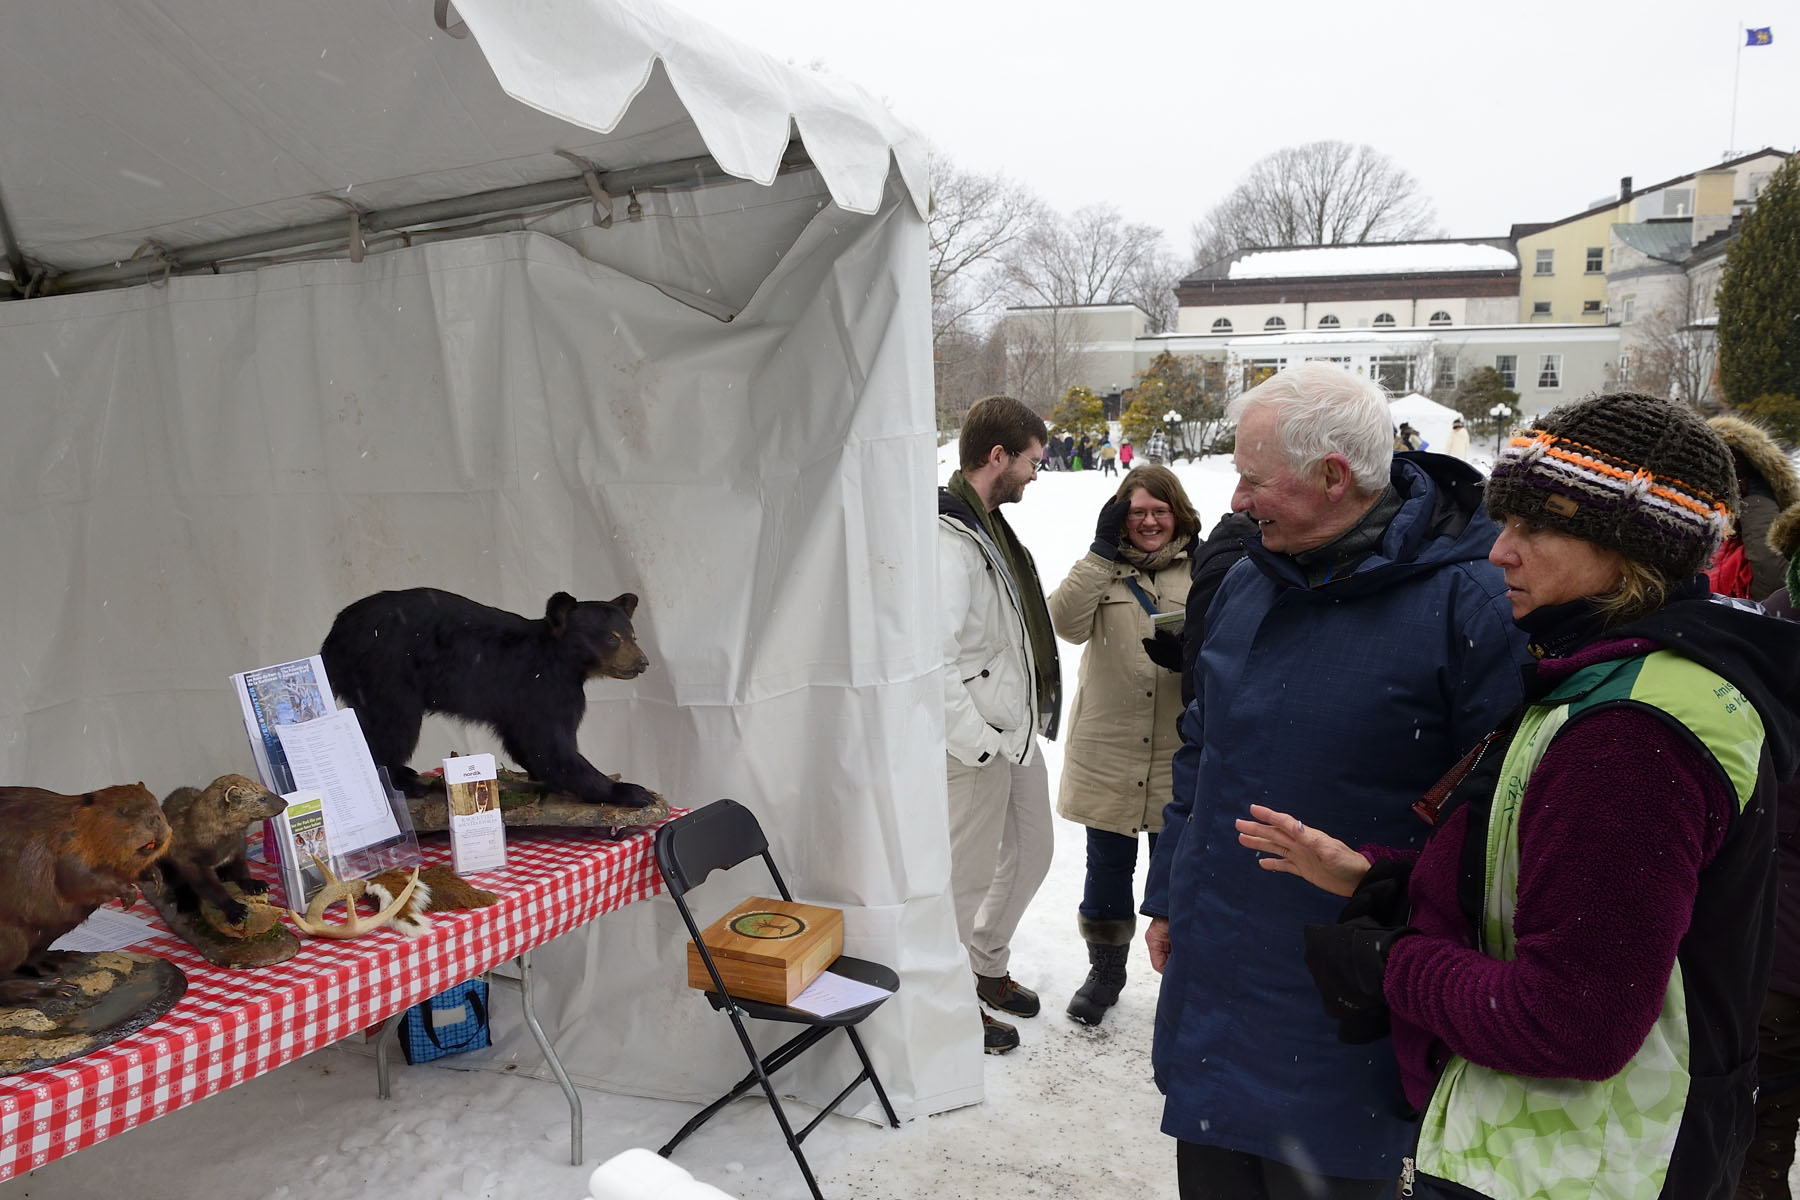 His Excellency stopped by the Friends of Gatineau Park's kiosk. Visitors were able to learn about what happens to the wild animals of our region and their habitats during the winter months.